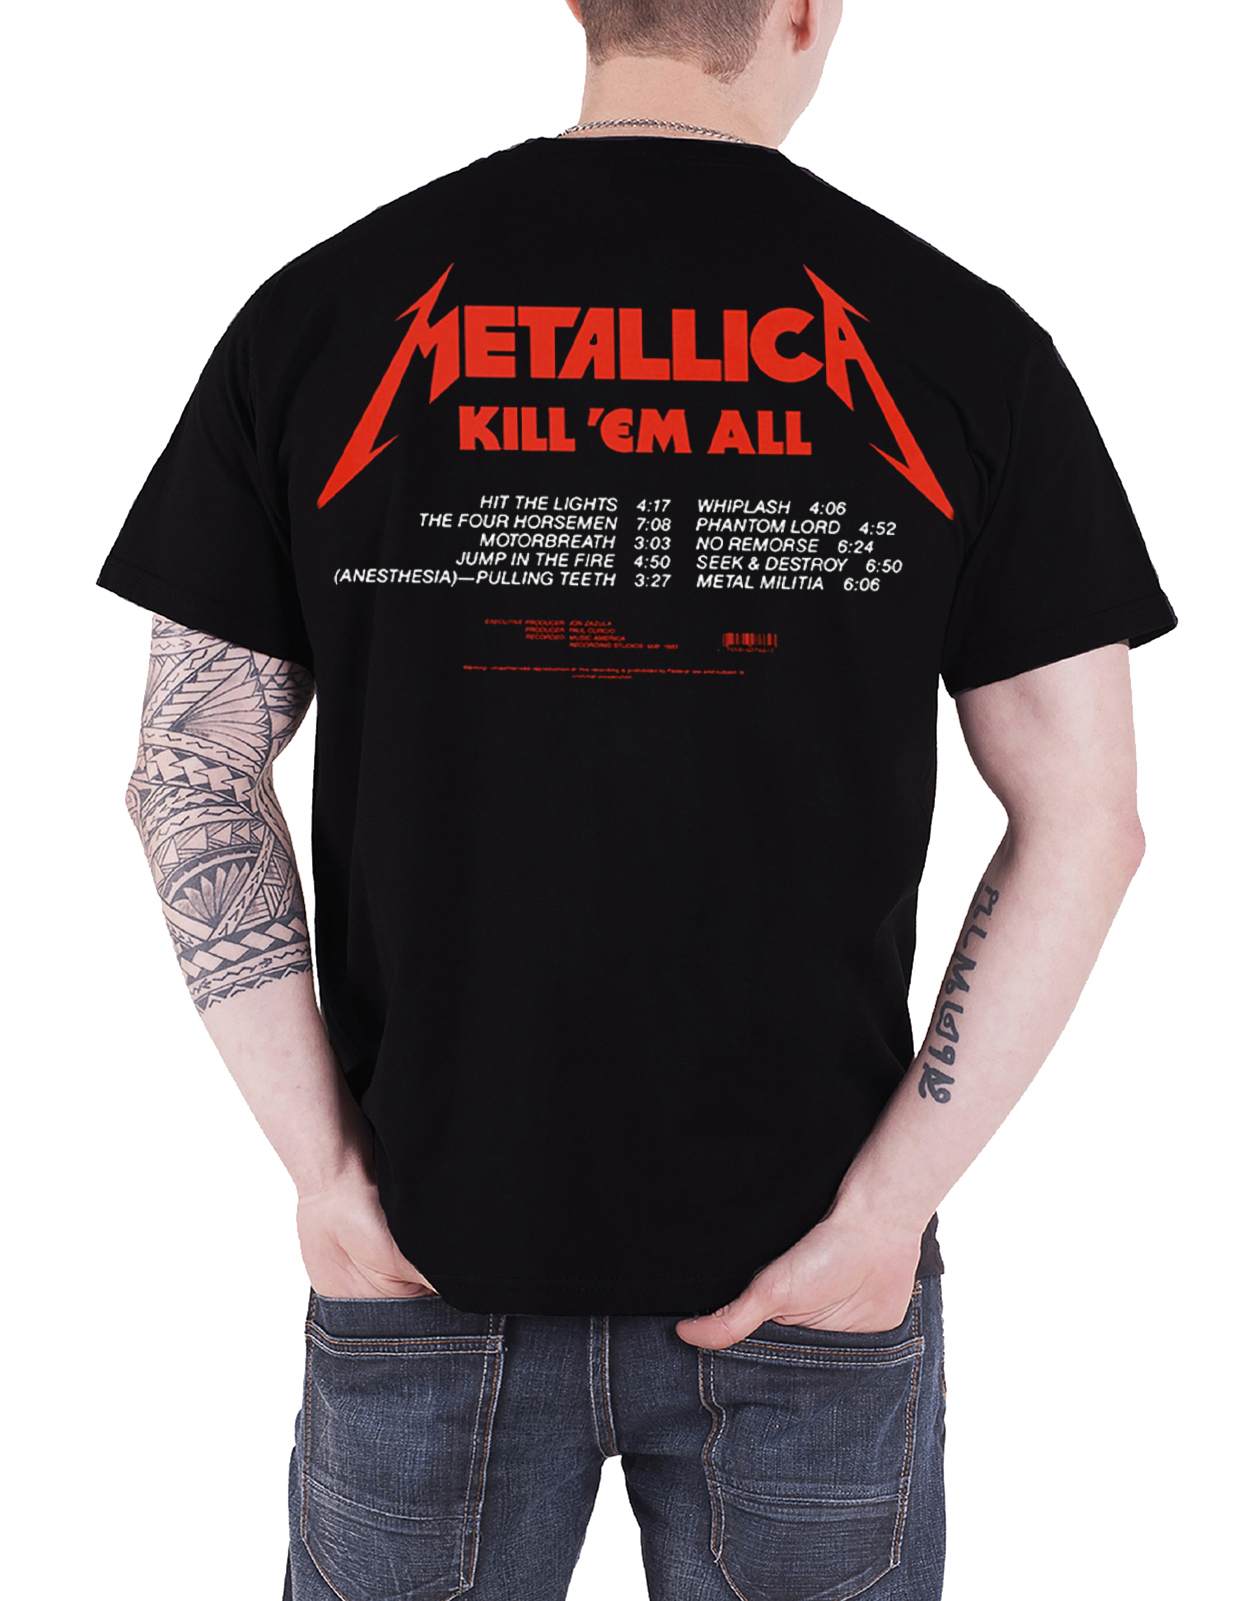 Official-Metallica-T-Shirt-Hardwired-Justice-for-all-RTL-band-logo-mens-new Indexbild 61